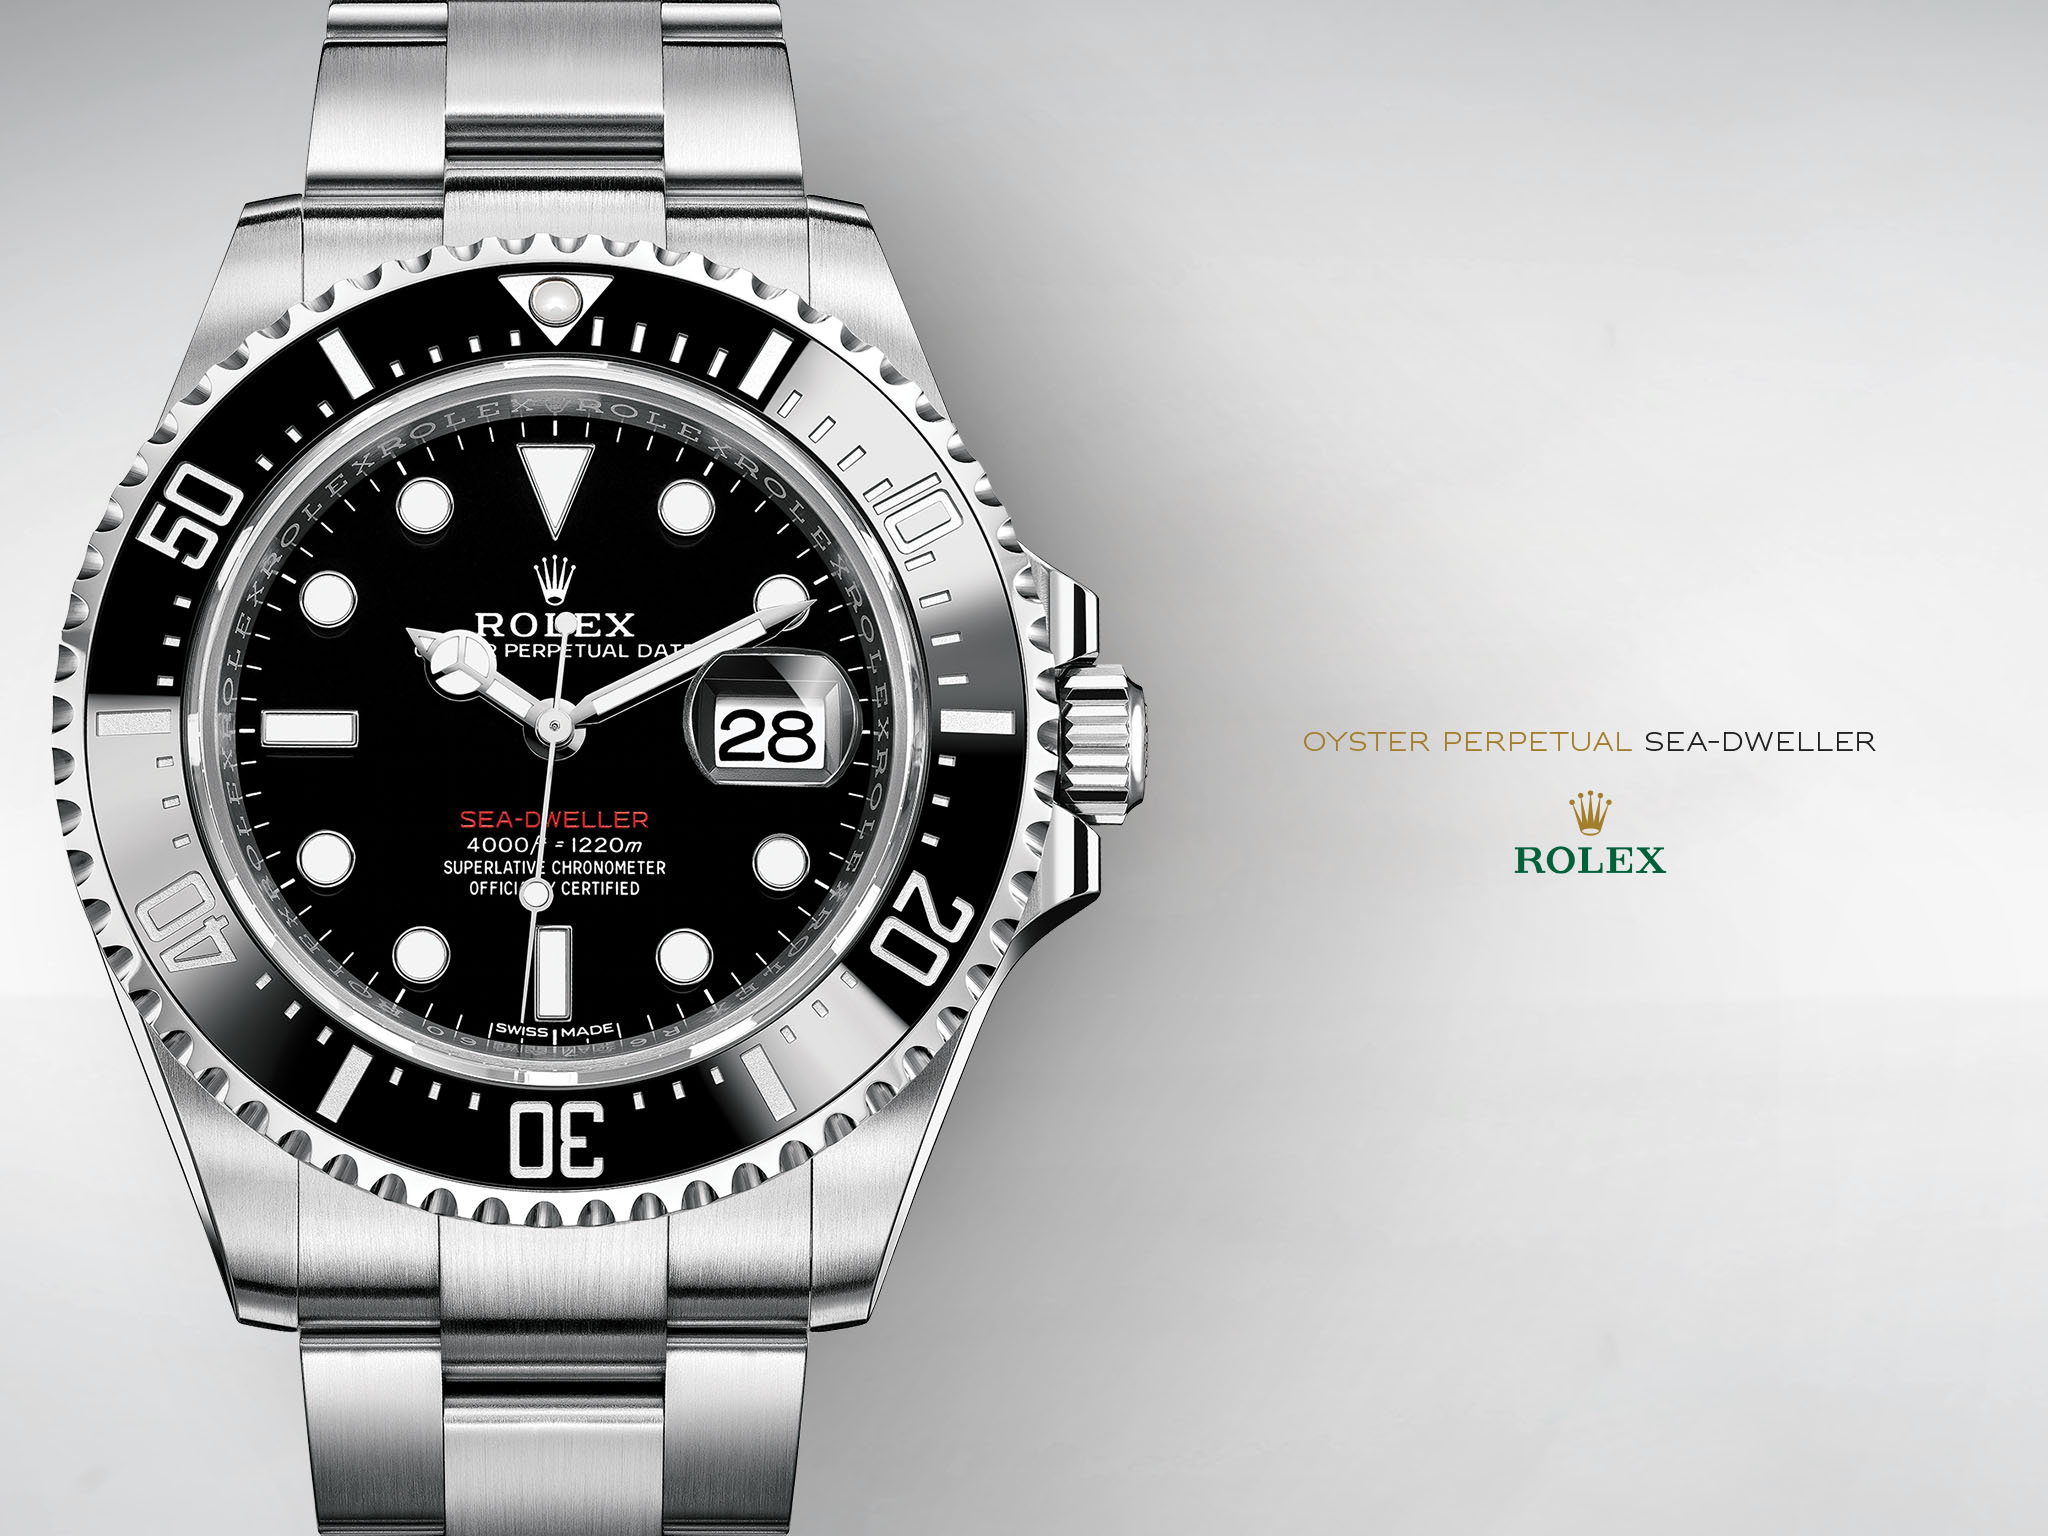 Download Rolex Wallpaper Gallery